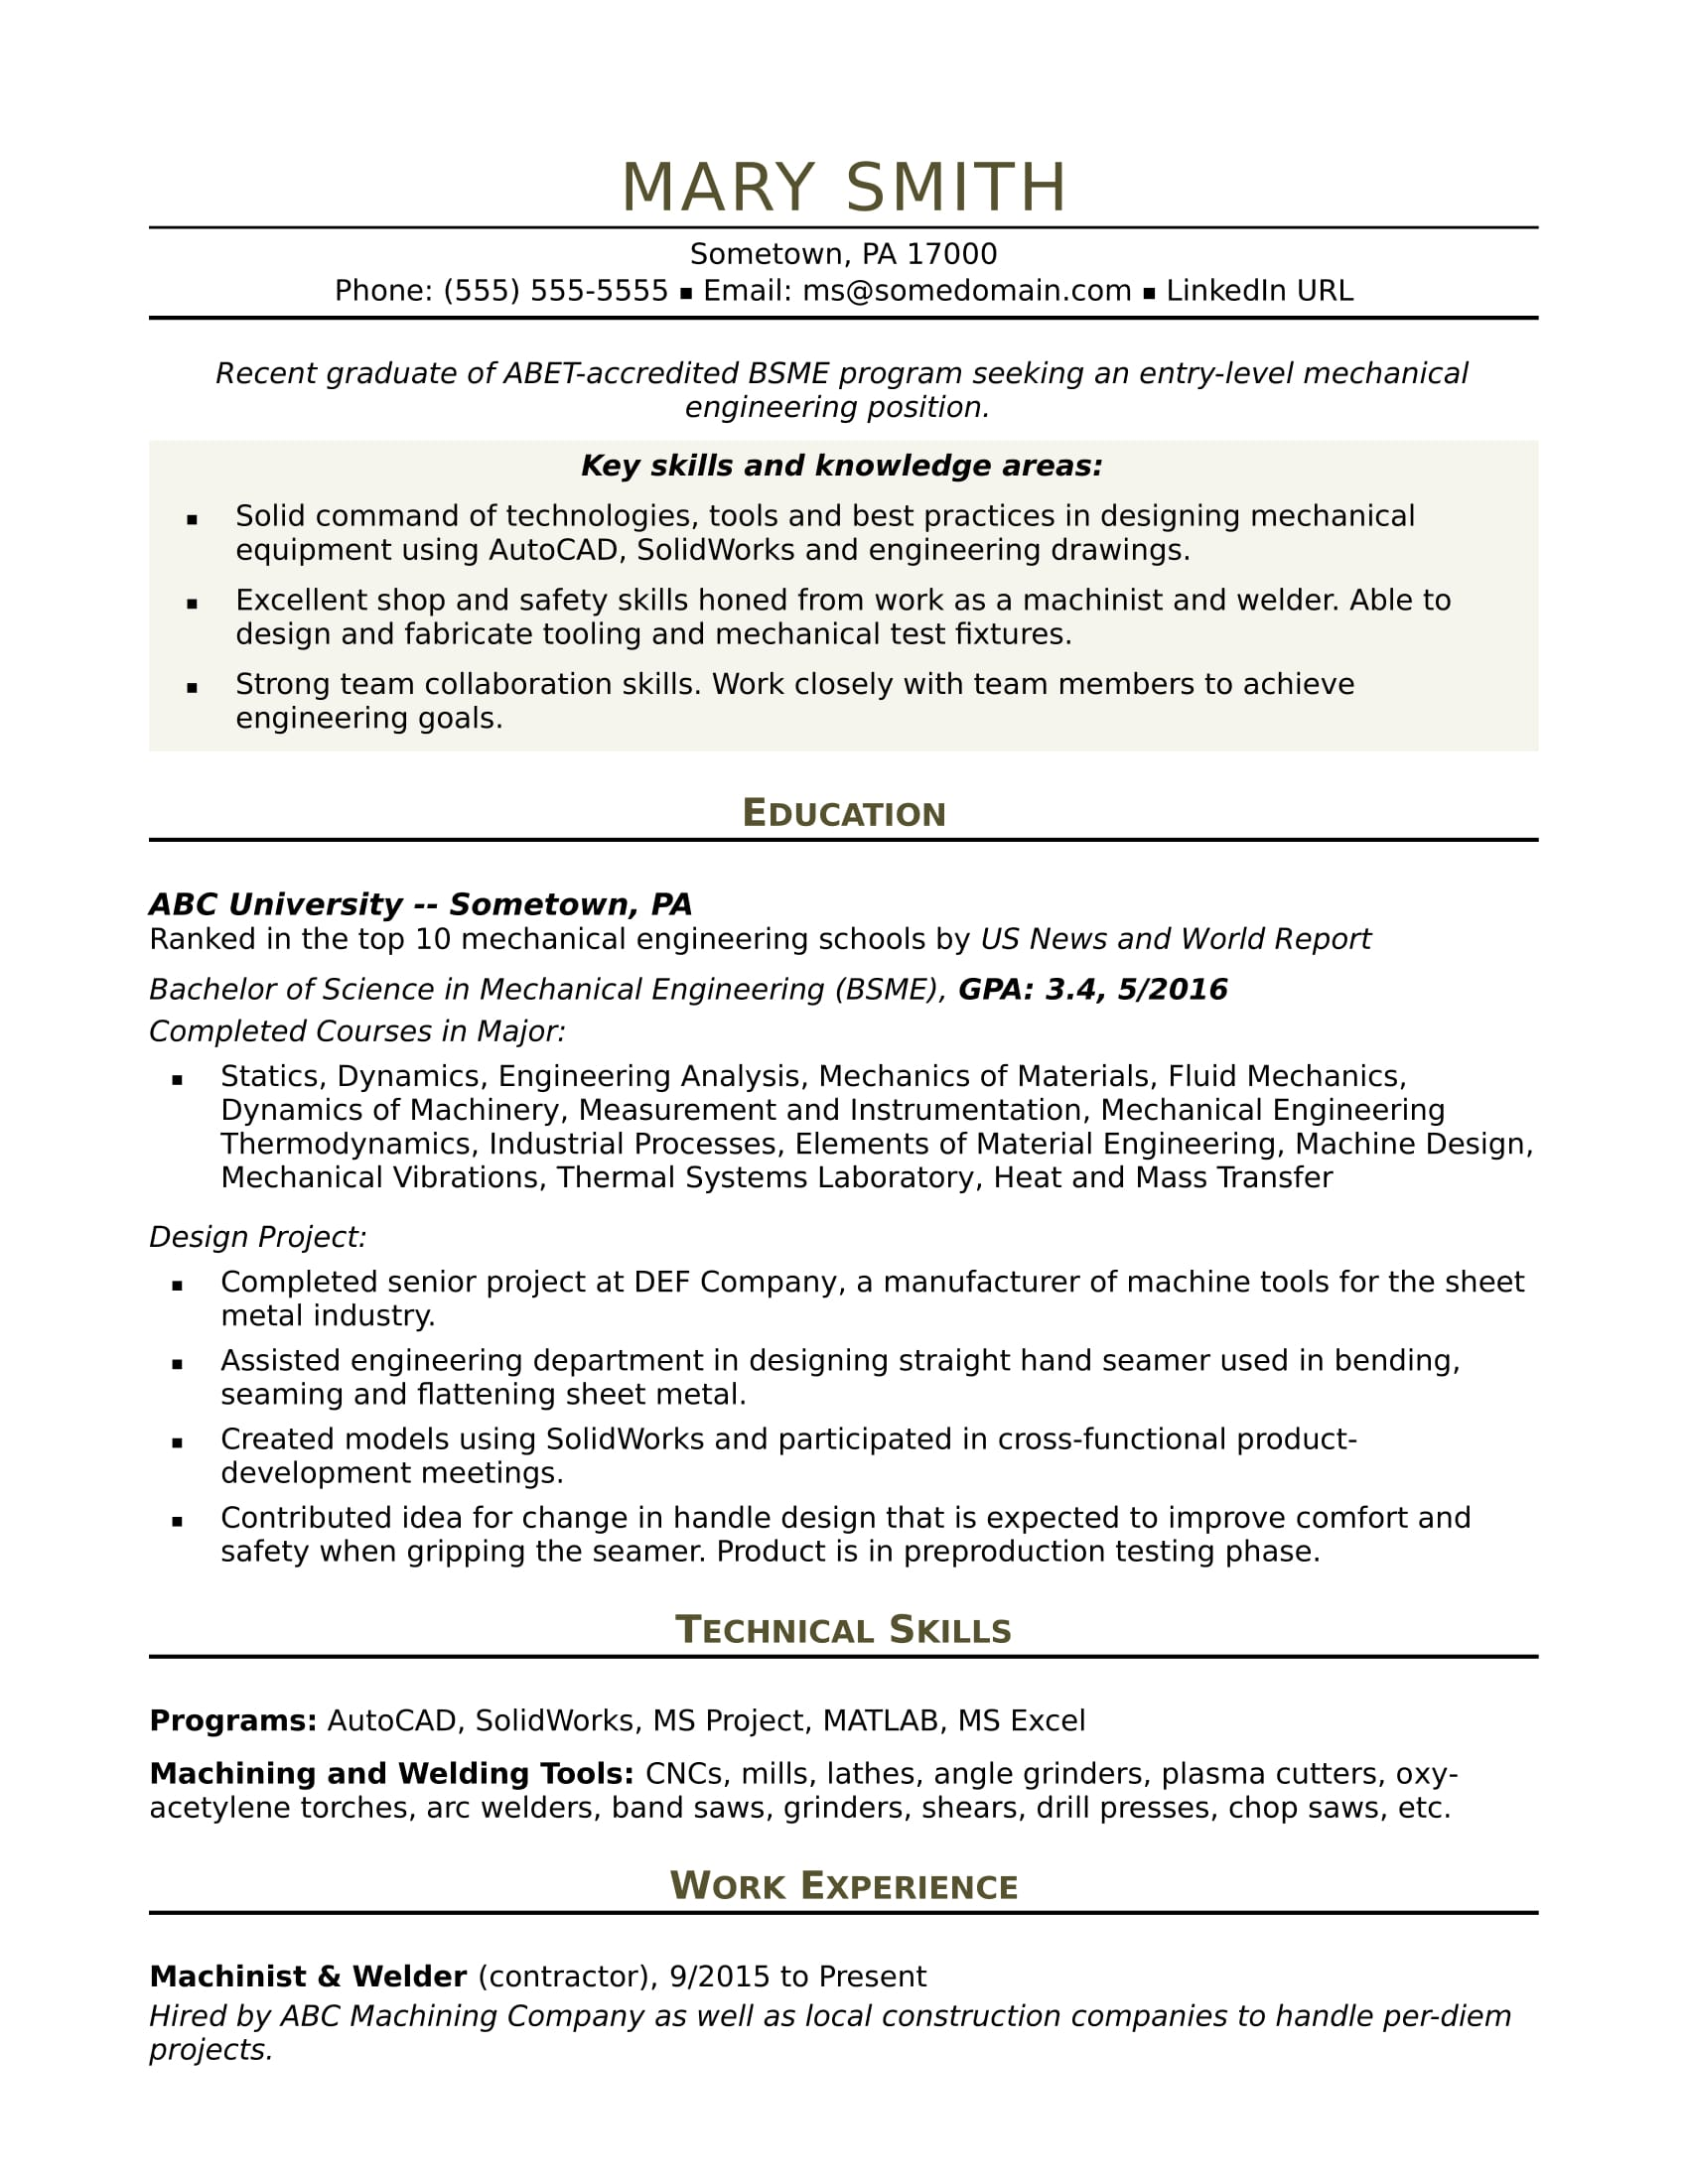 Lovely Sample Resume For An Entry Level Mechanical Engineer  Resume For